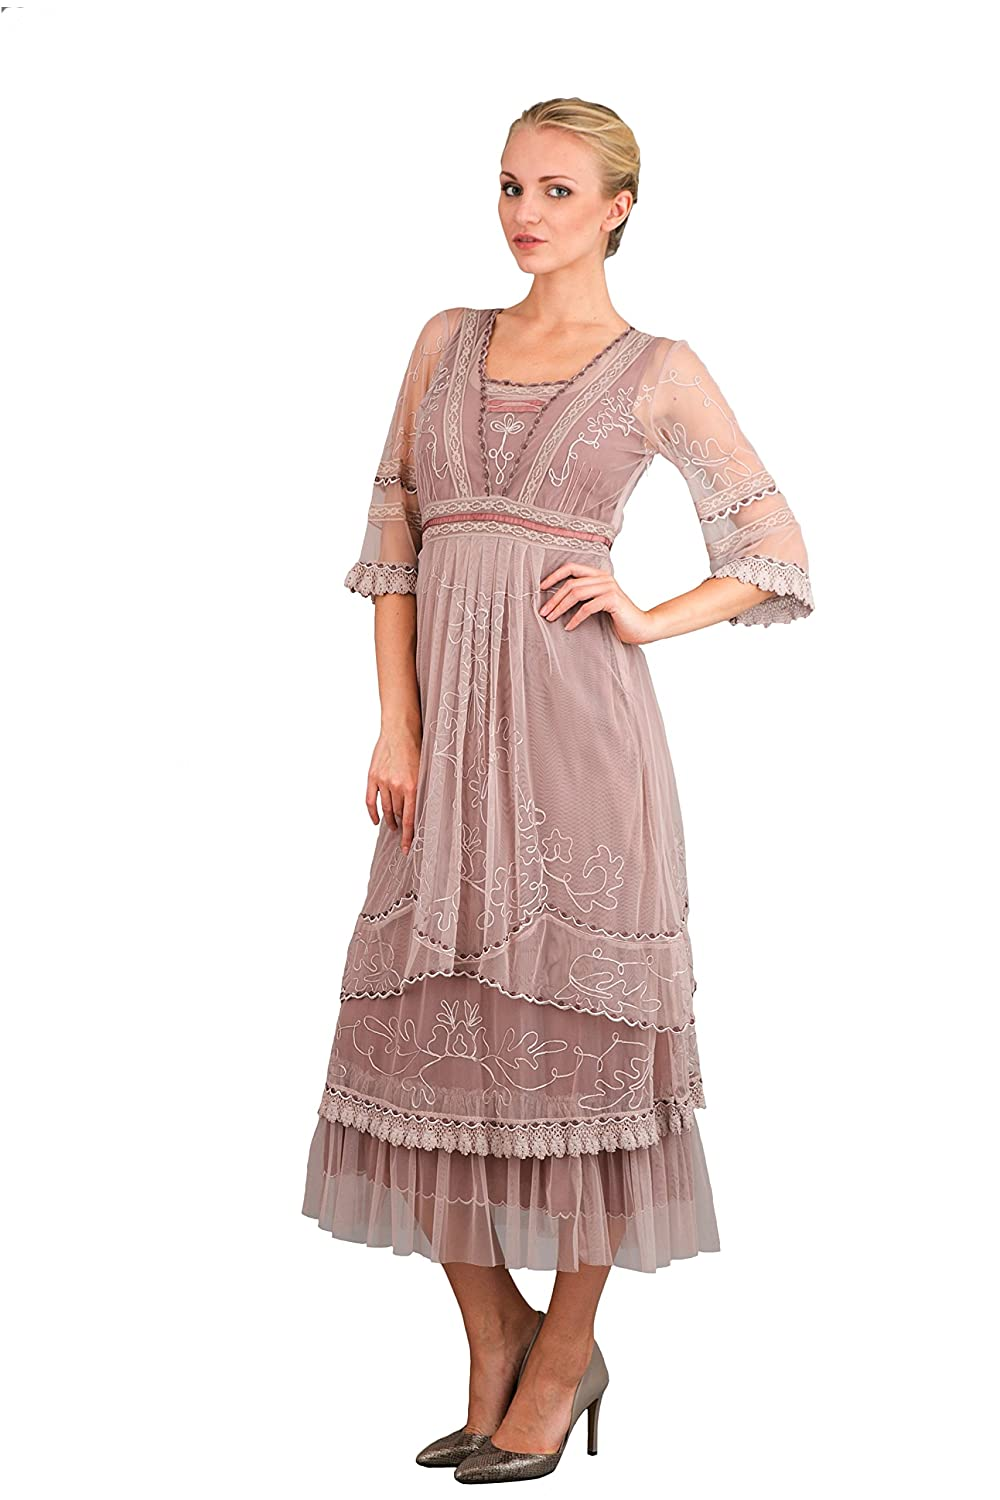 1920s Day Dresses, Tea Dresses, Garden Party Dresses Art Deco Gatsby Party Dress in Amethyst $338.00 AT vintagedancer.com